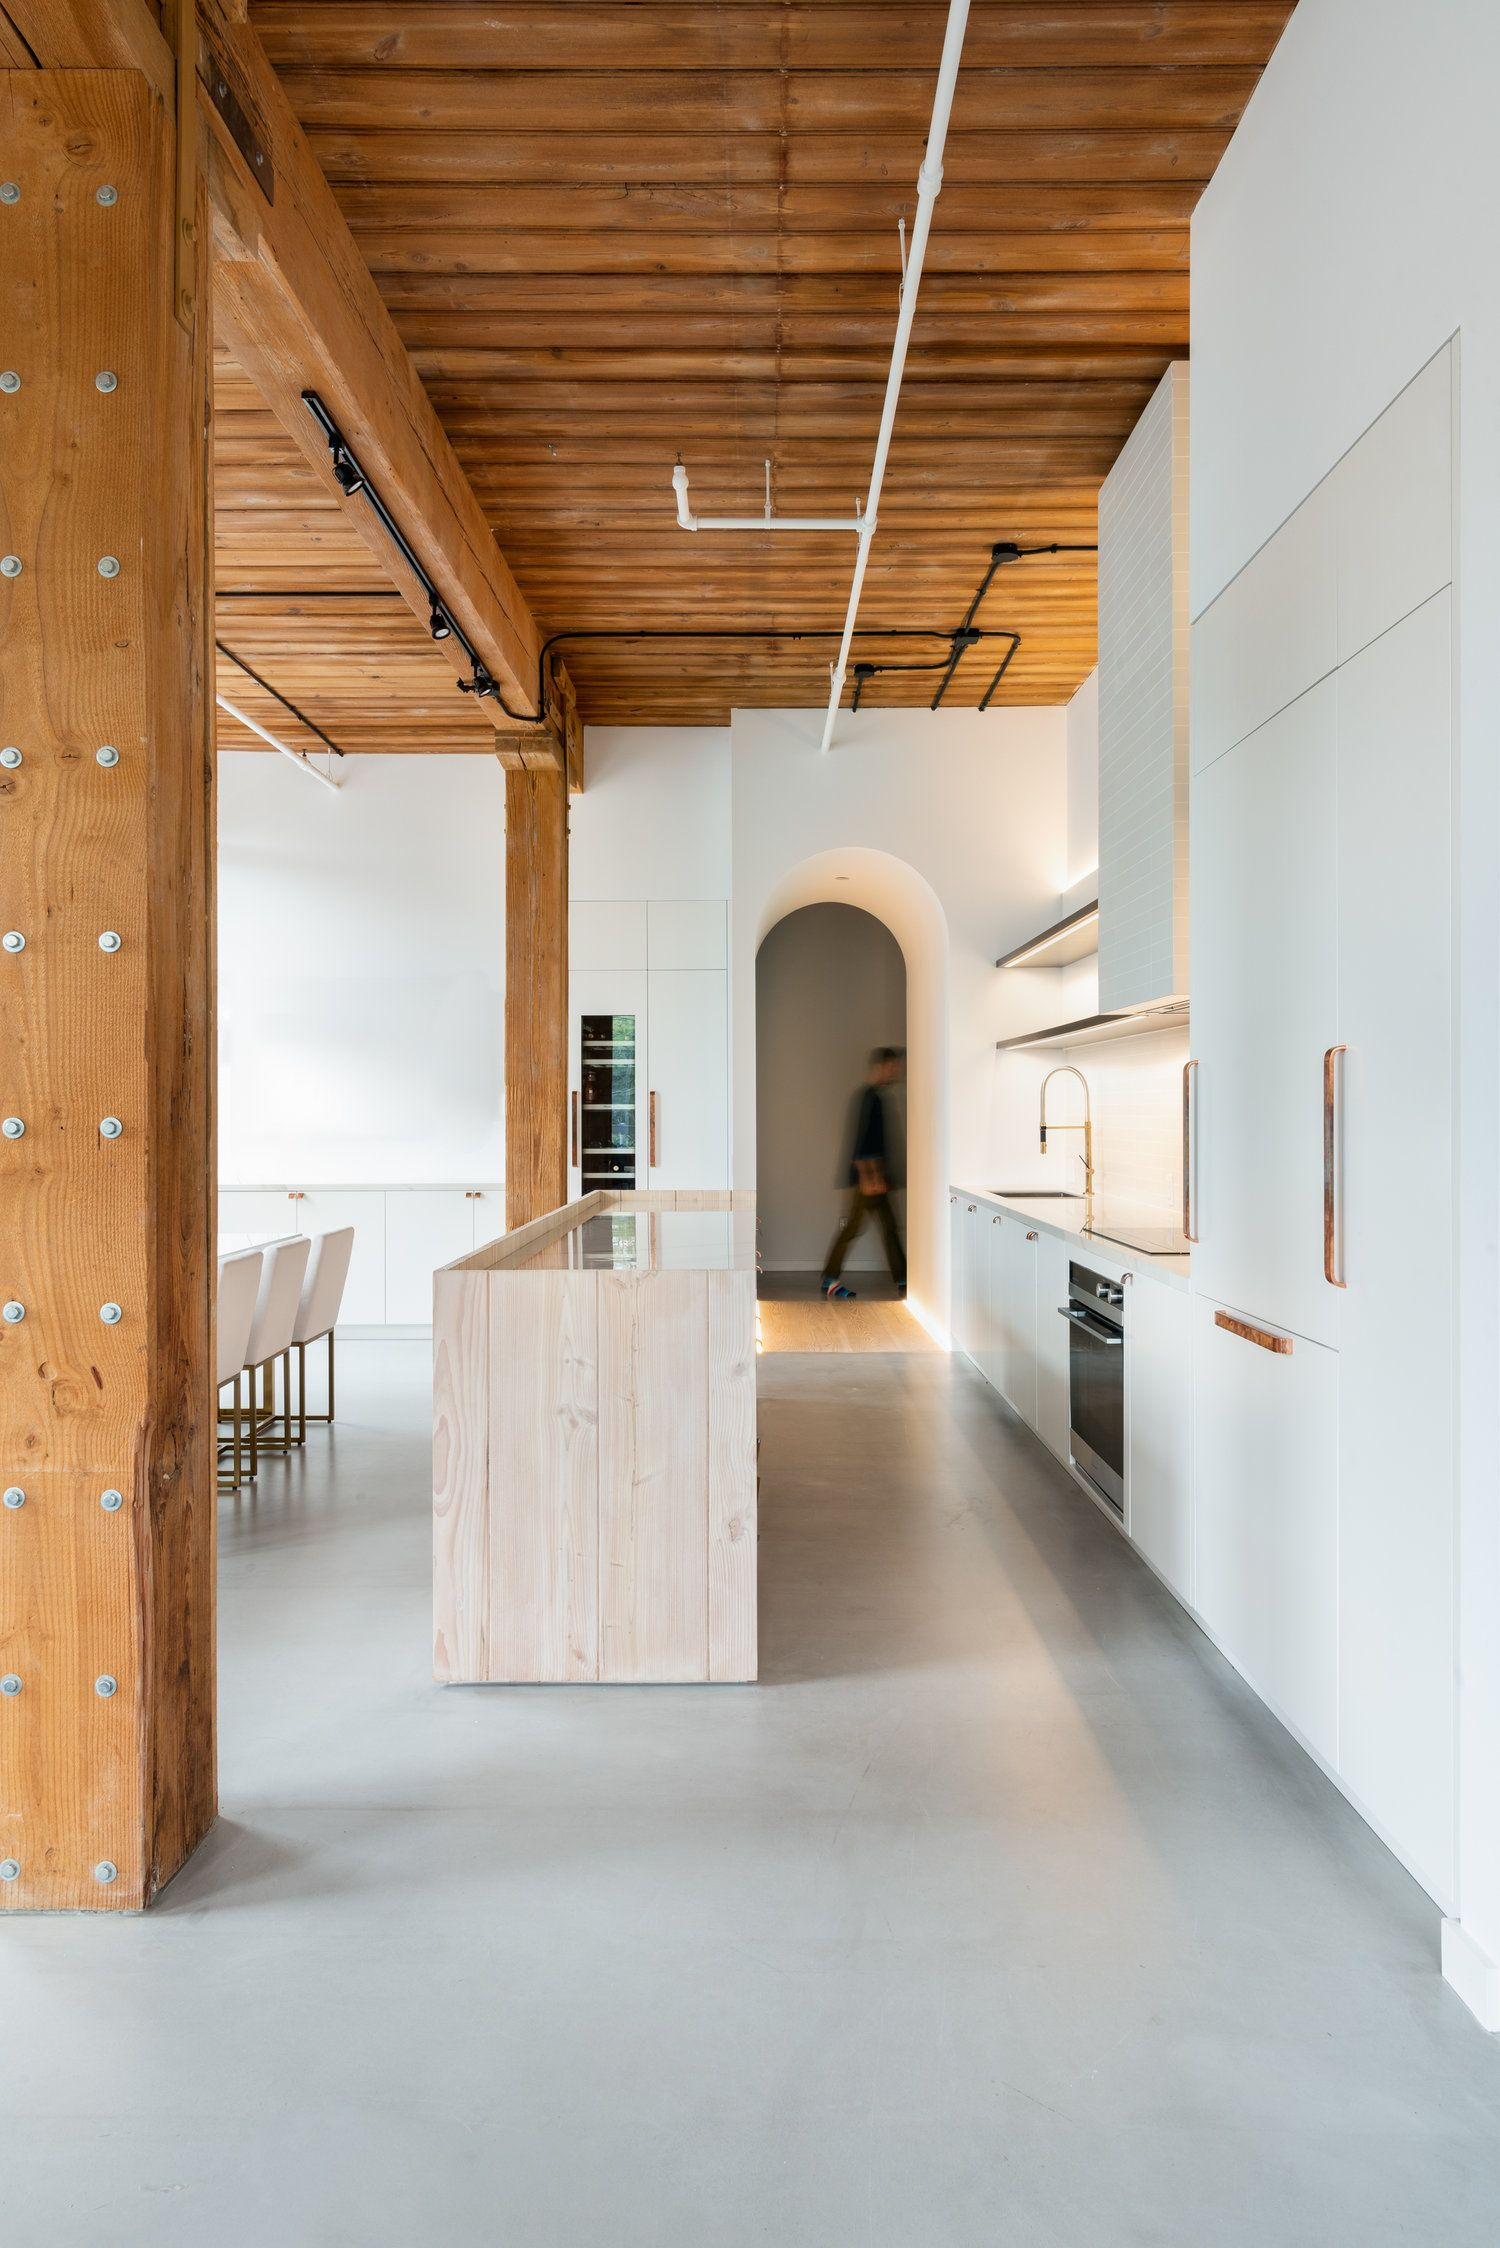 Candy loft leibal also homes and interiors rh pinterest